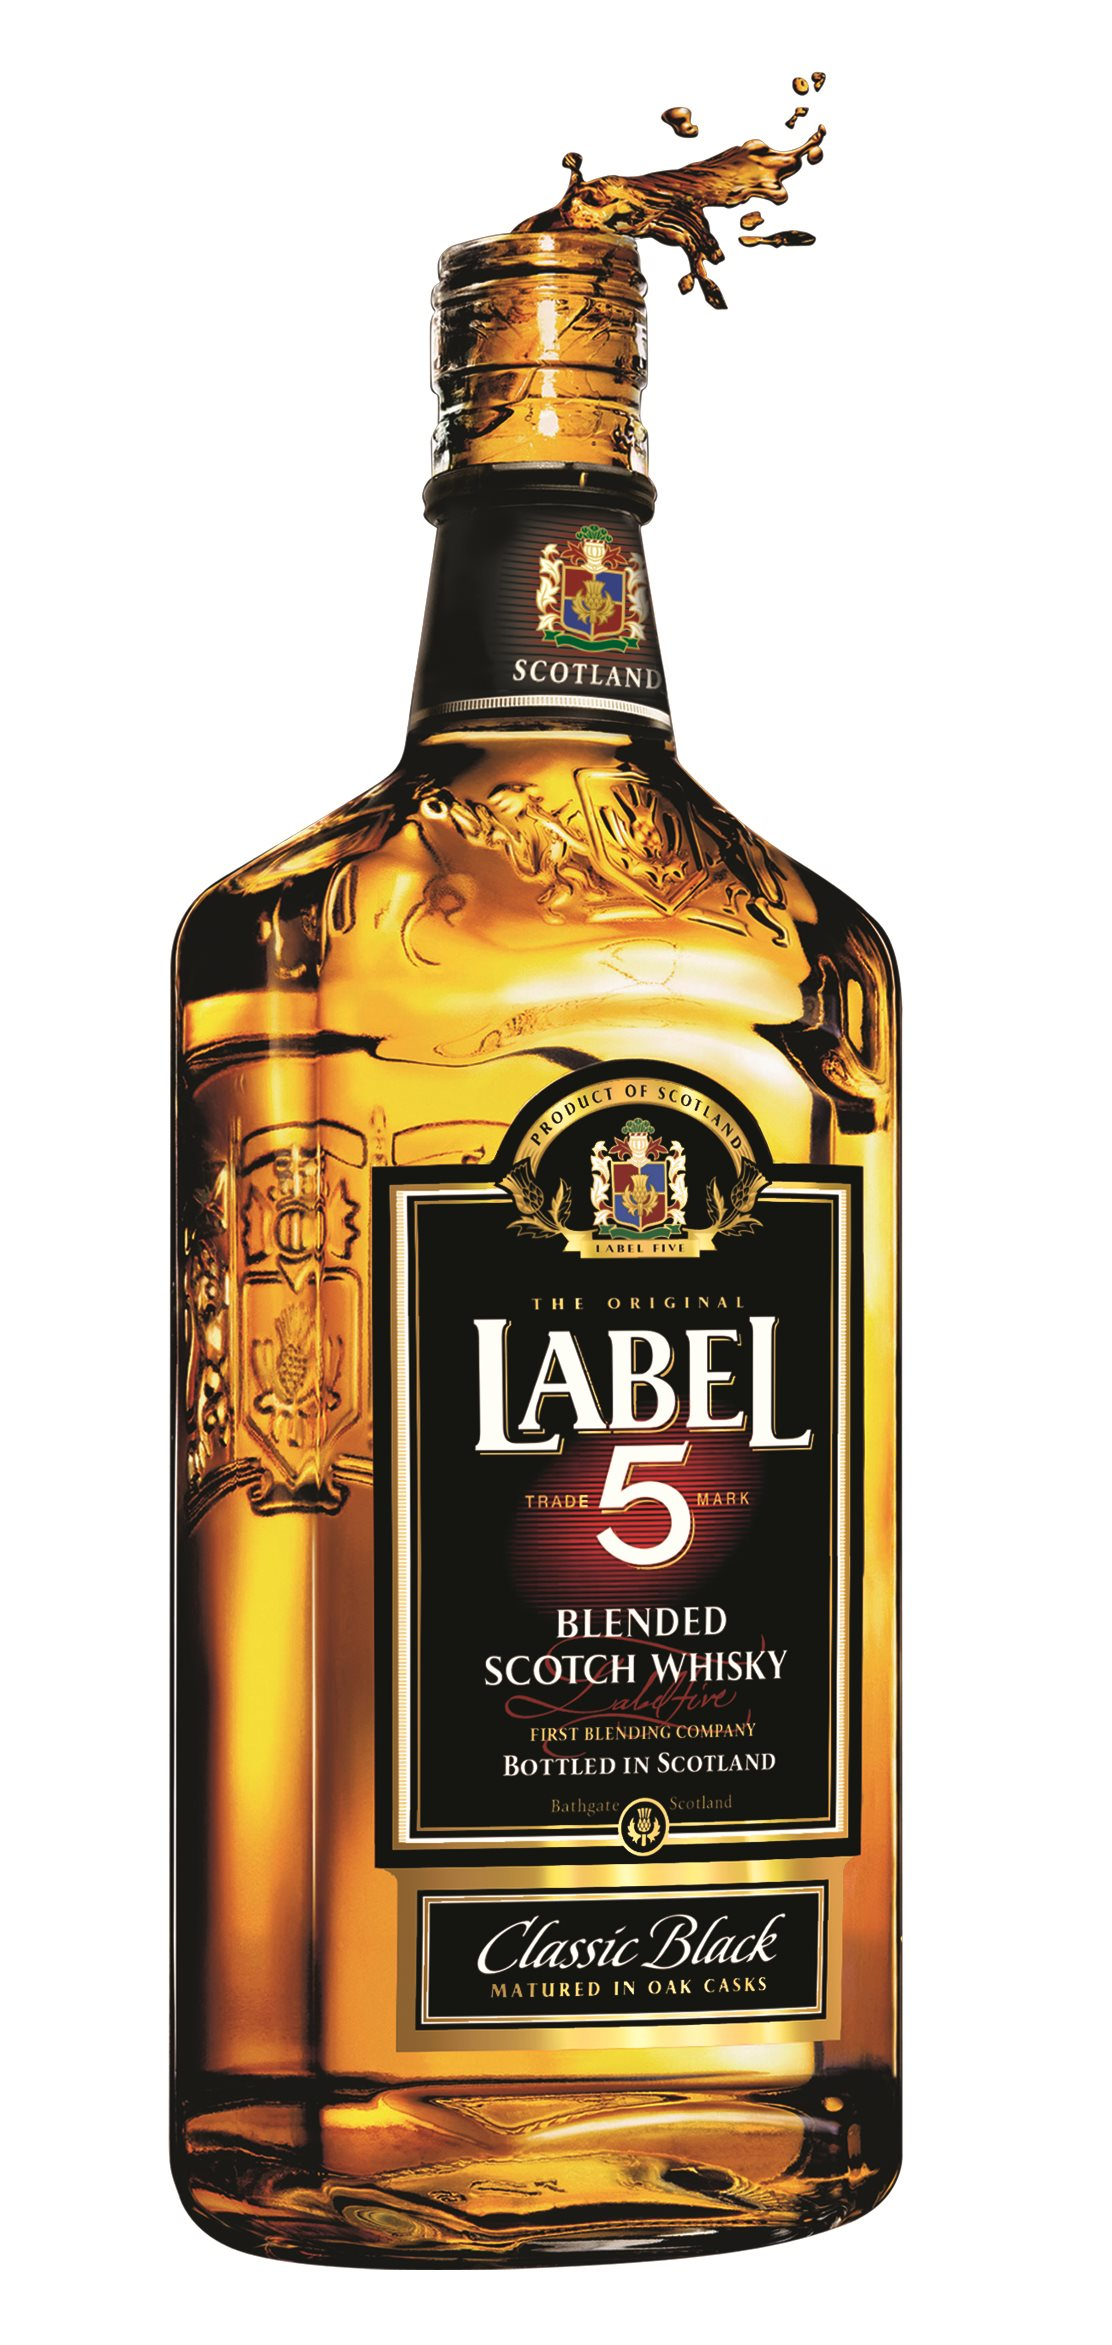 New Look for Label 5 Classic Black Scotch Whisky